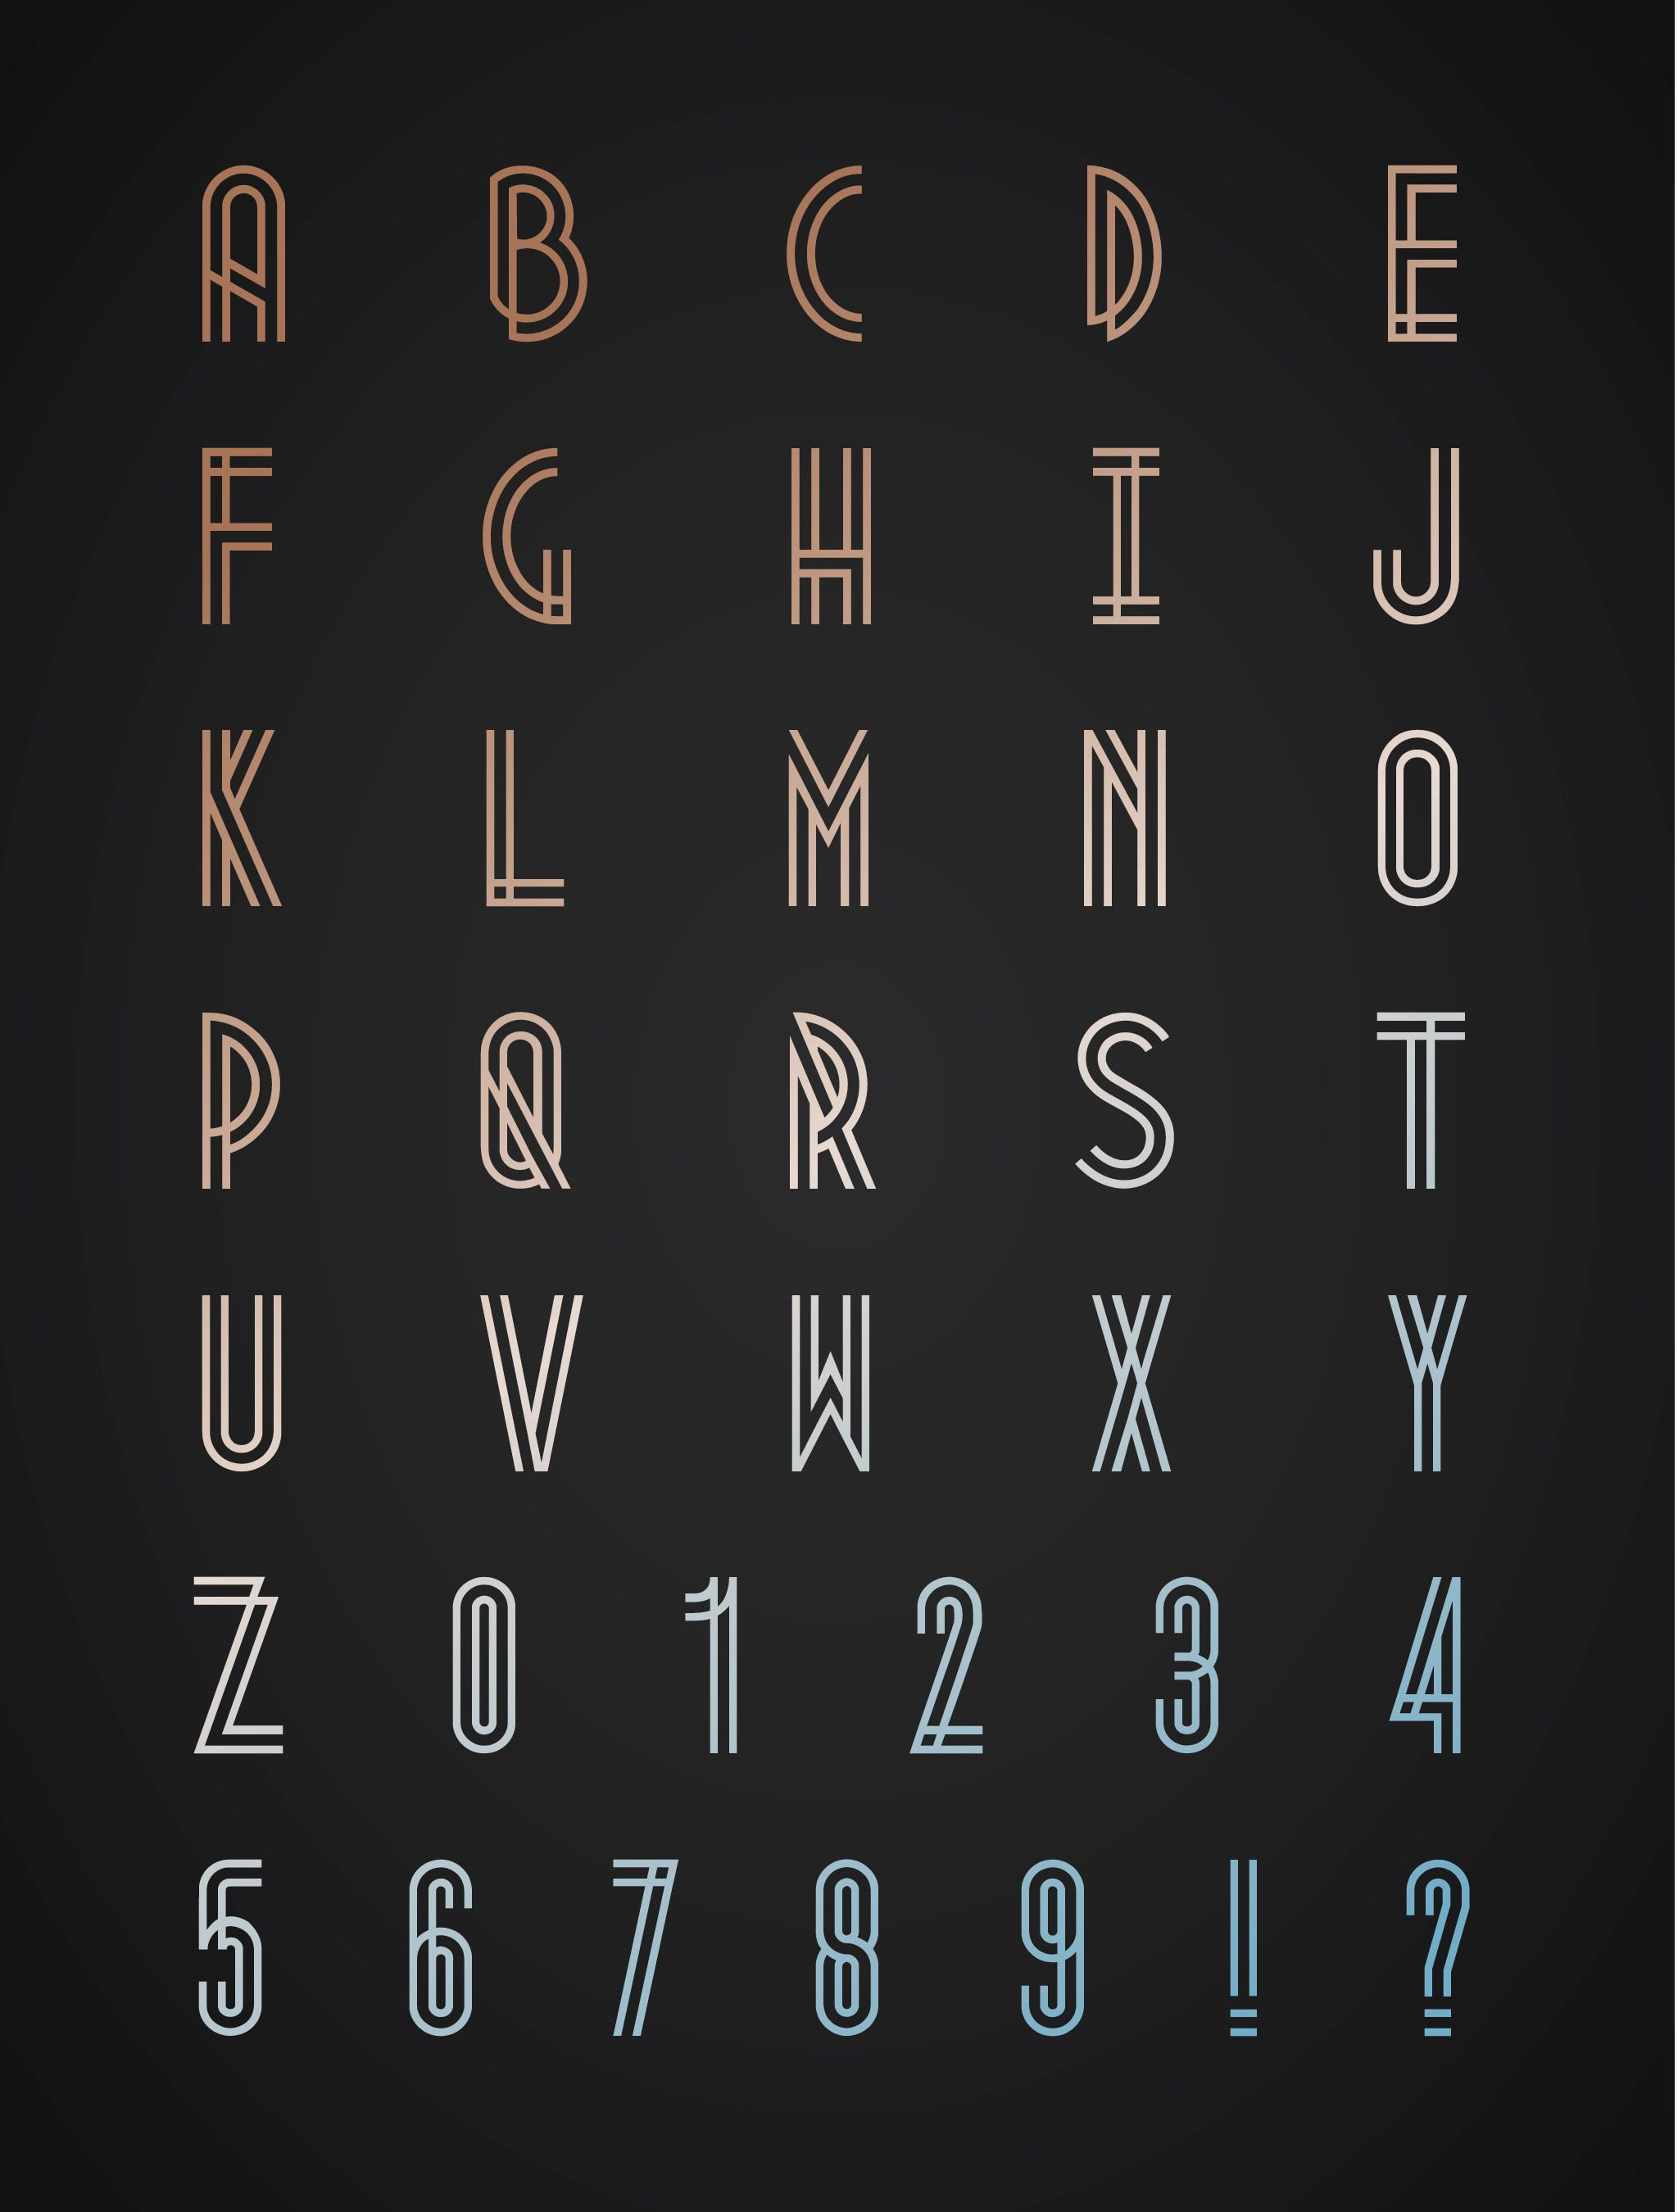 A Font Inspired By The Industrial Movement Of 1920s